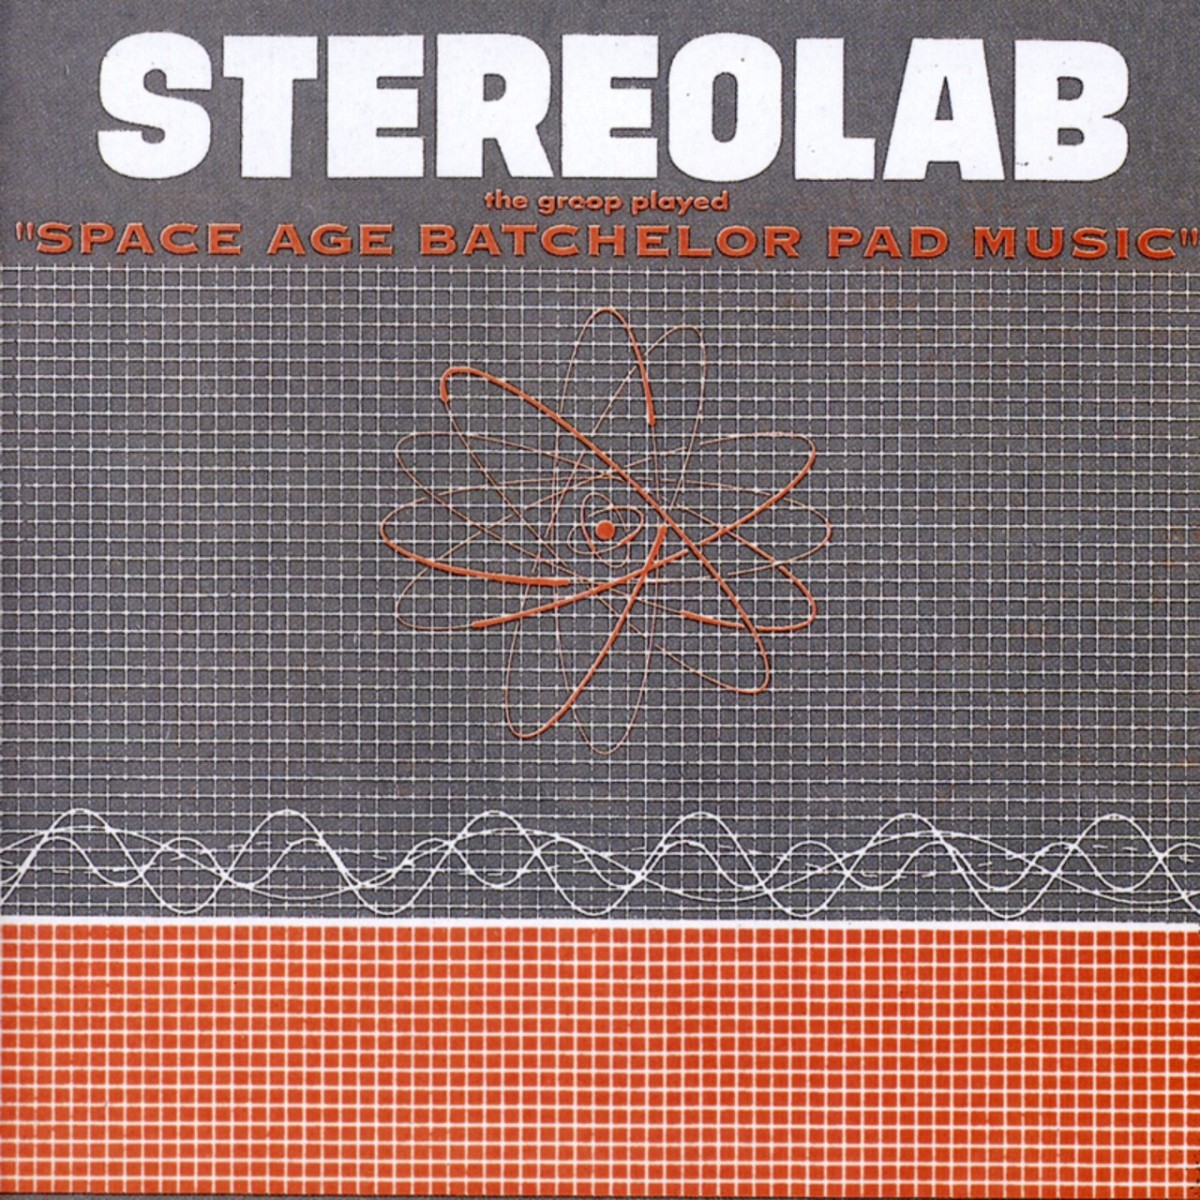 Stereolab The Groop Played Space Age Bachelor Pad Music reissue